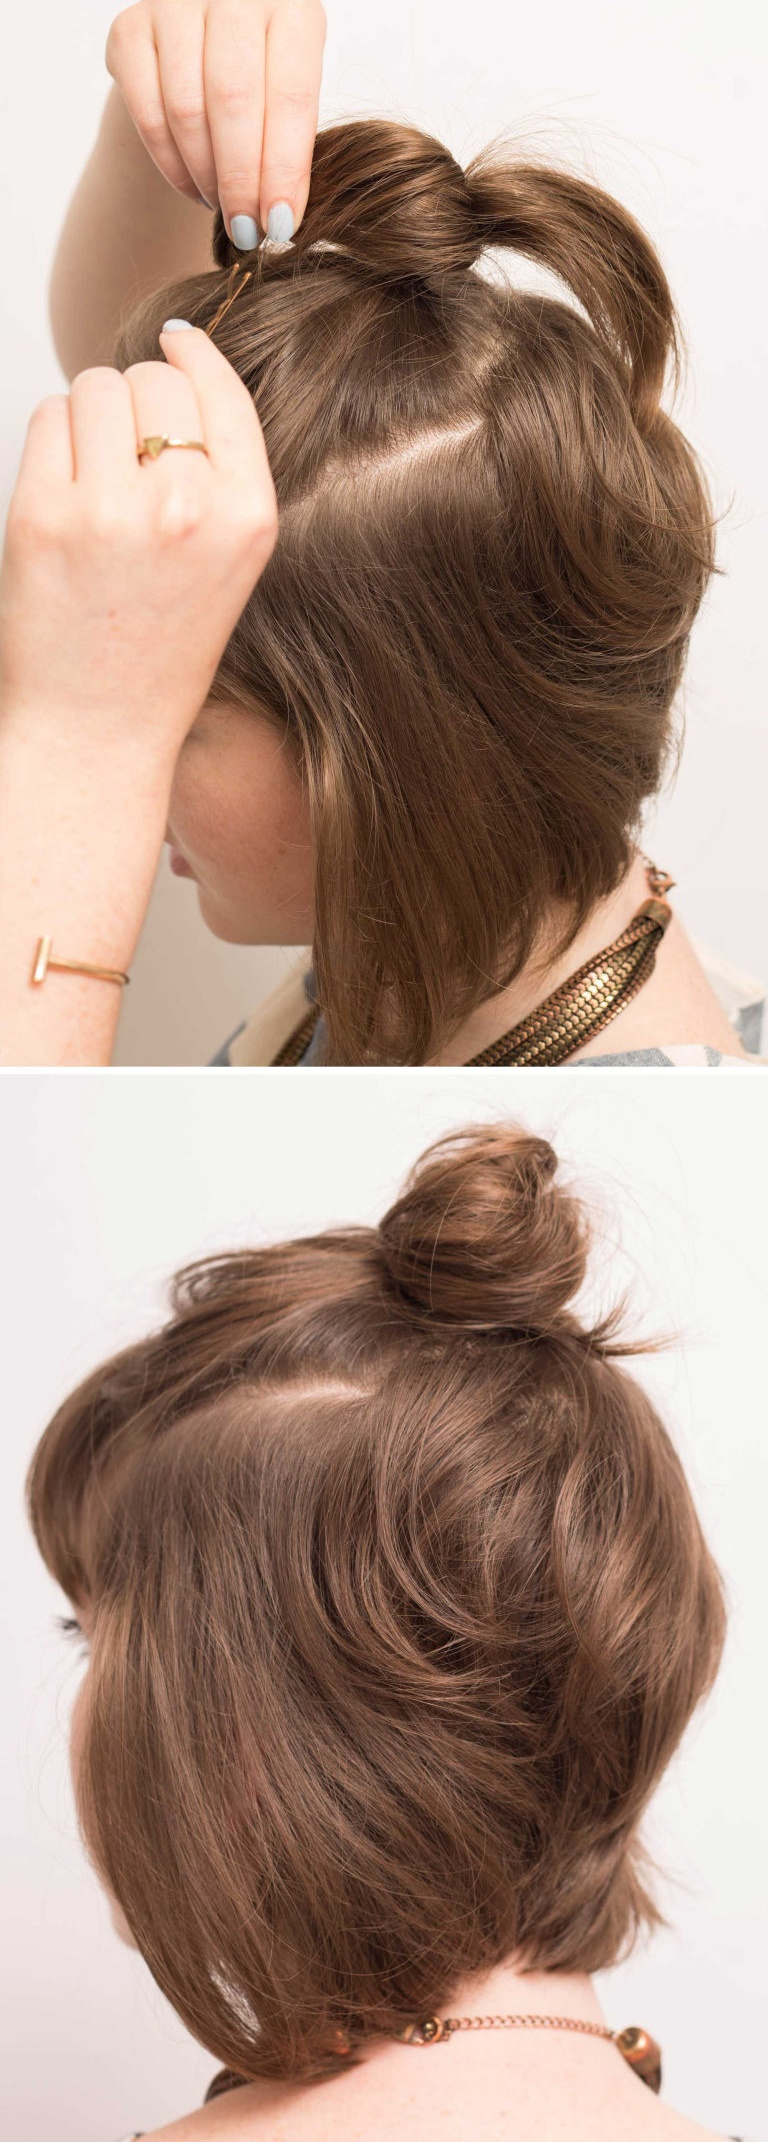 Cute Hairstyles You Will Be Able To Get In 20 Seconds 4